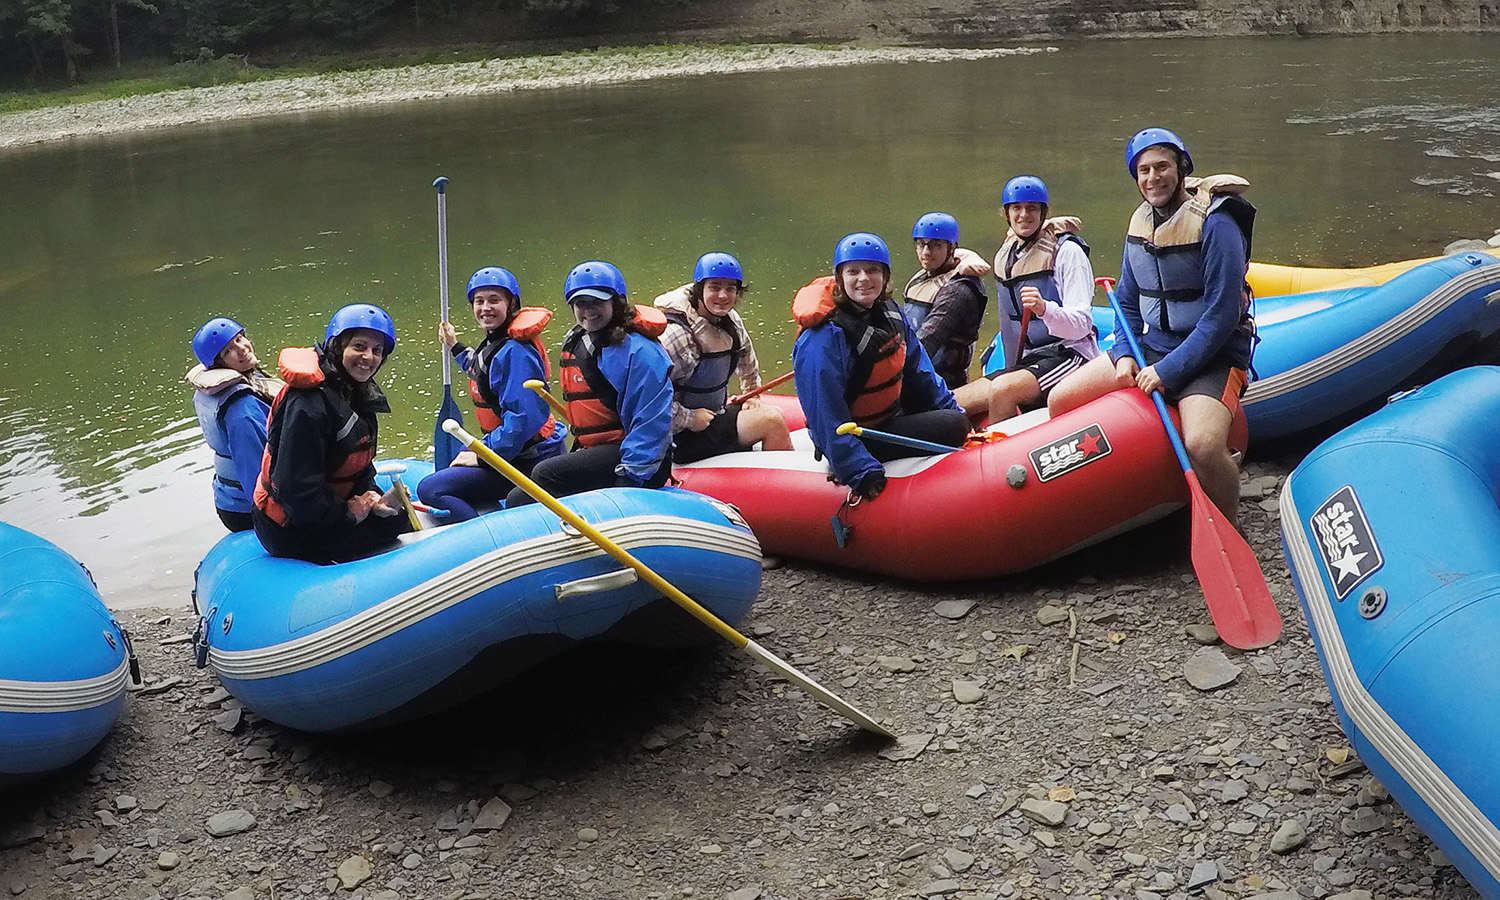 At Letchworth State Park, students in the HWS Outdoor Recreation Adventure Program gather for a photo before rafting.